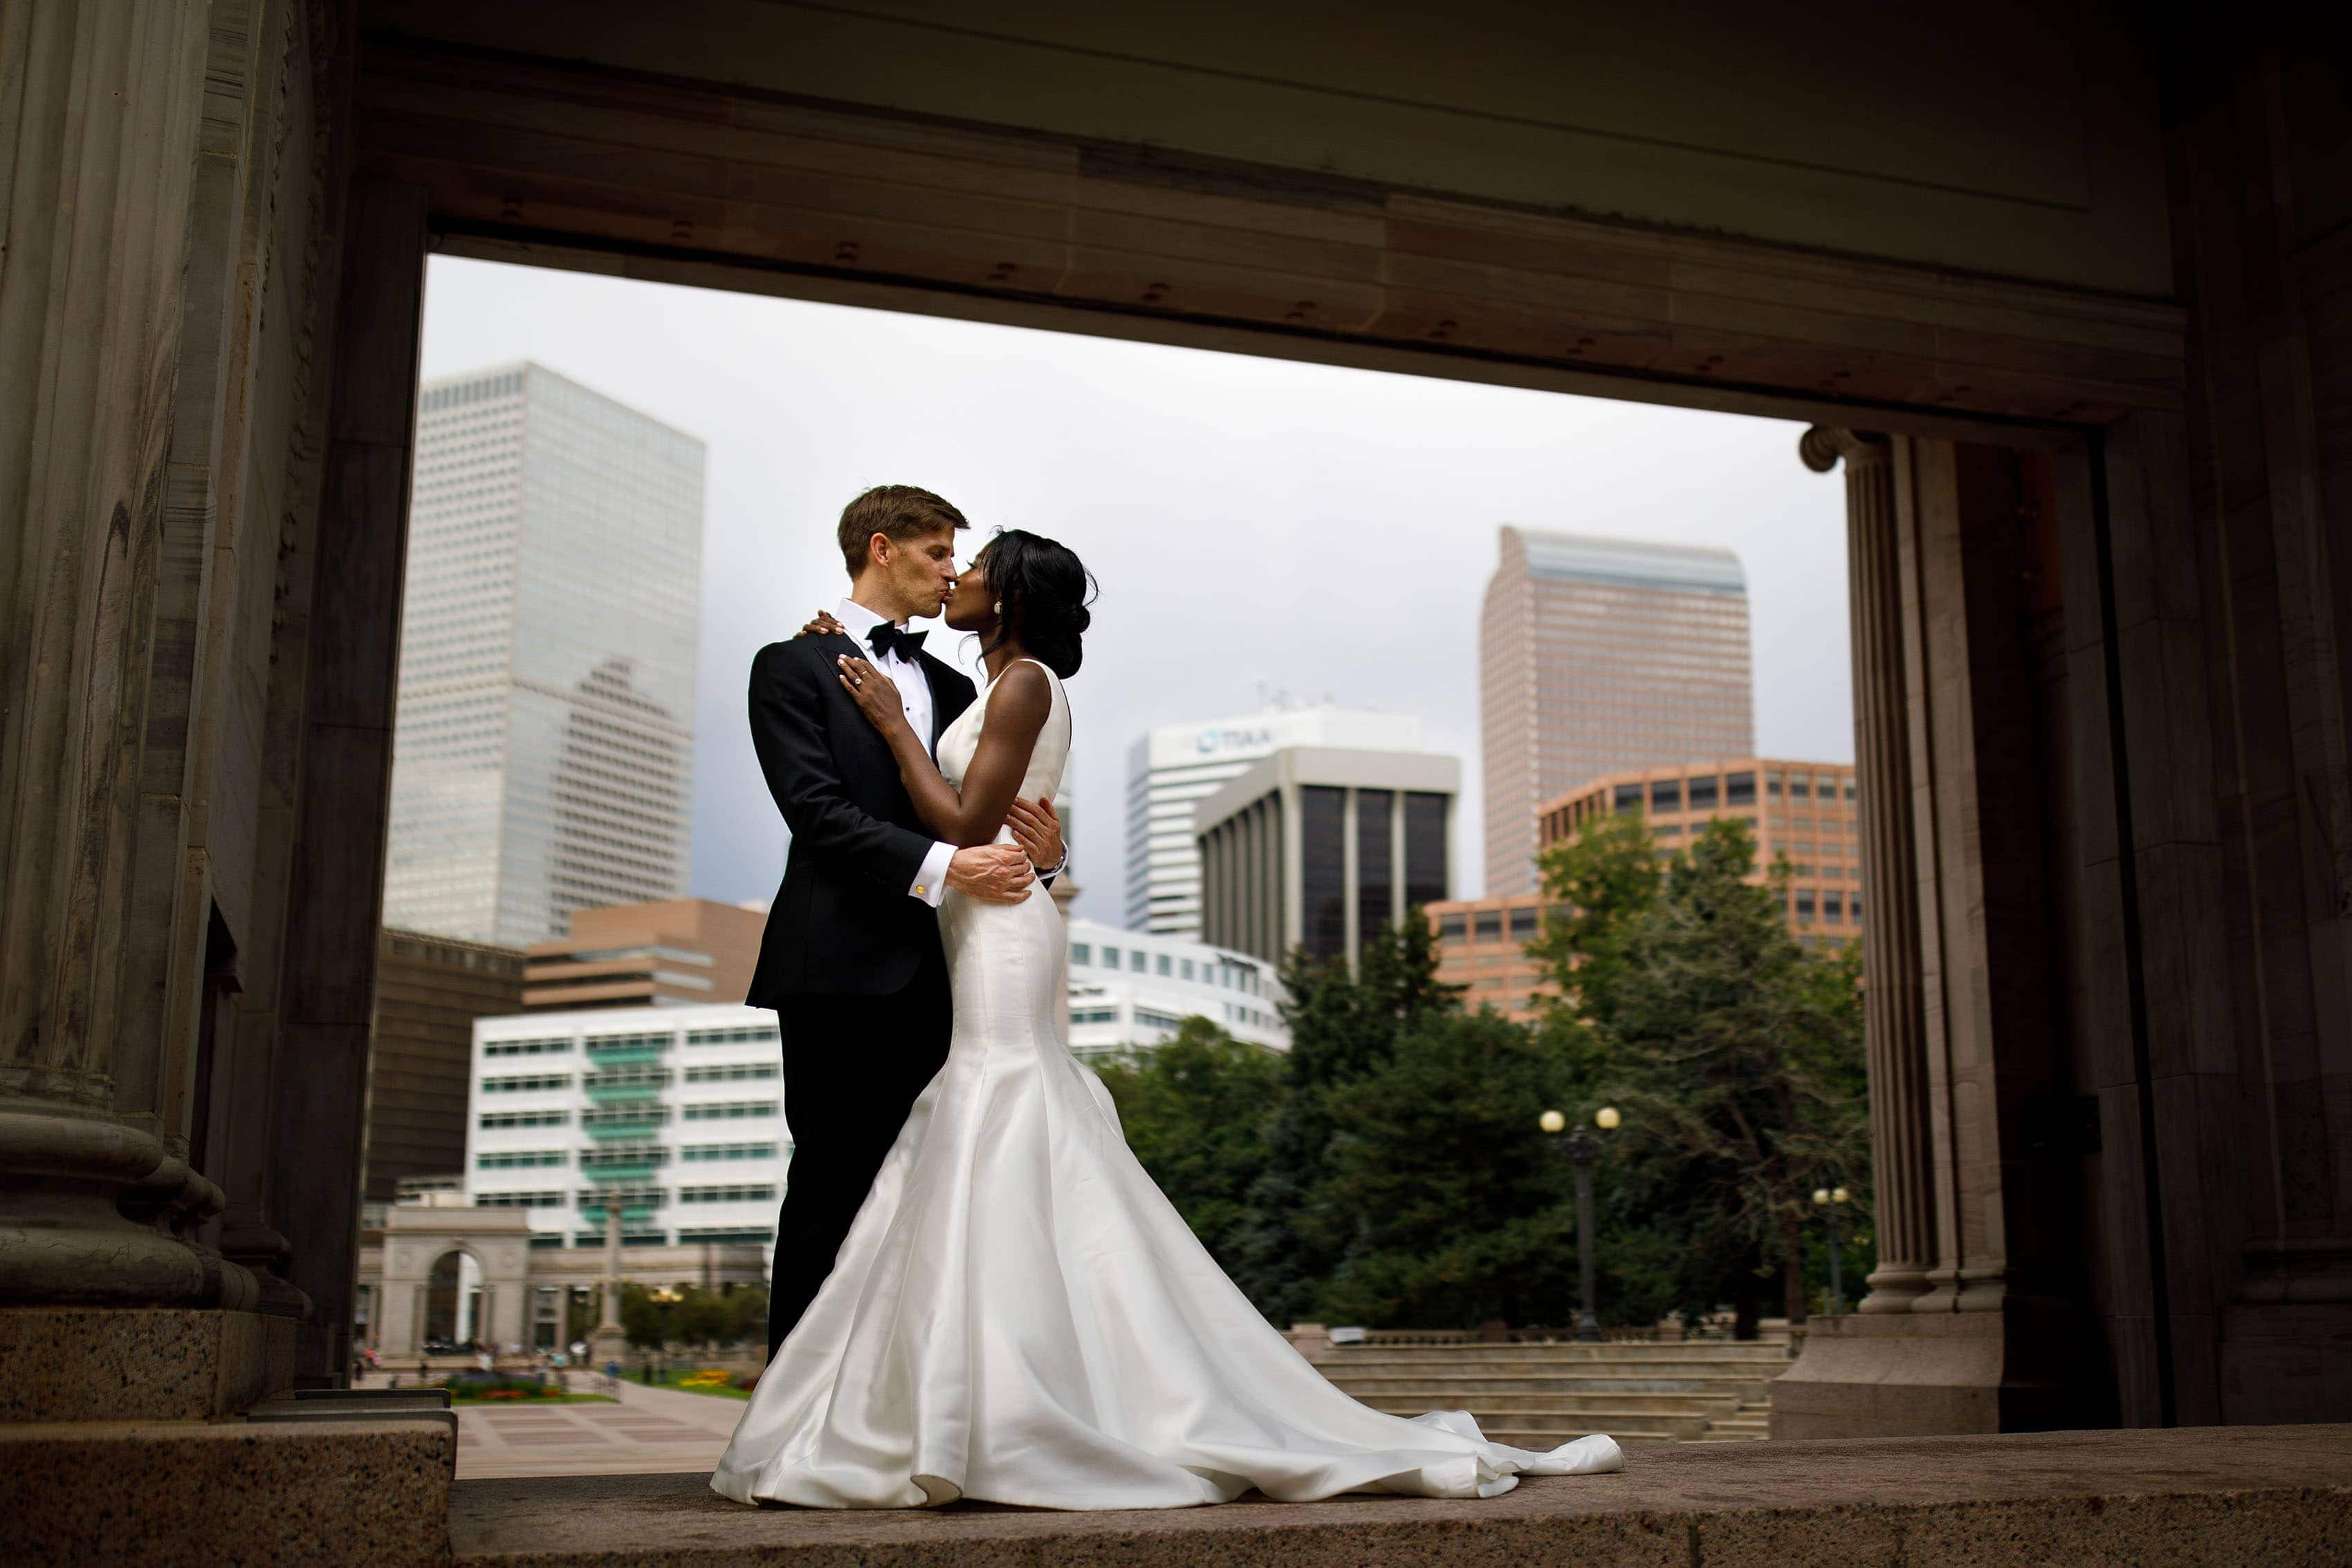 The couple kiss in the Greek ampatheatre at Denver's Civic Center Park on their wedding day